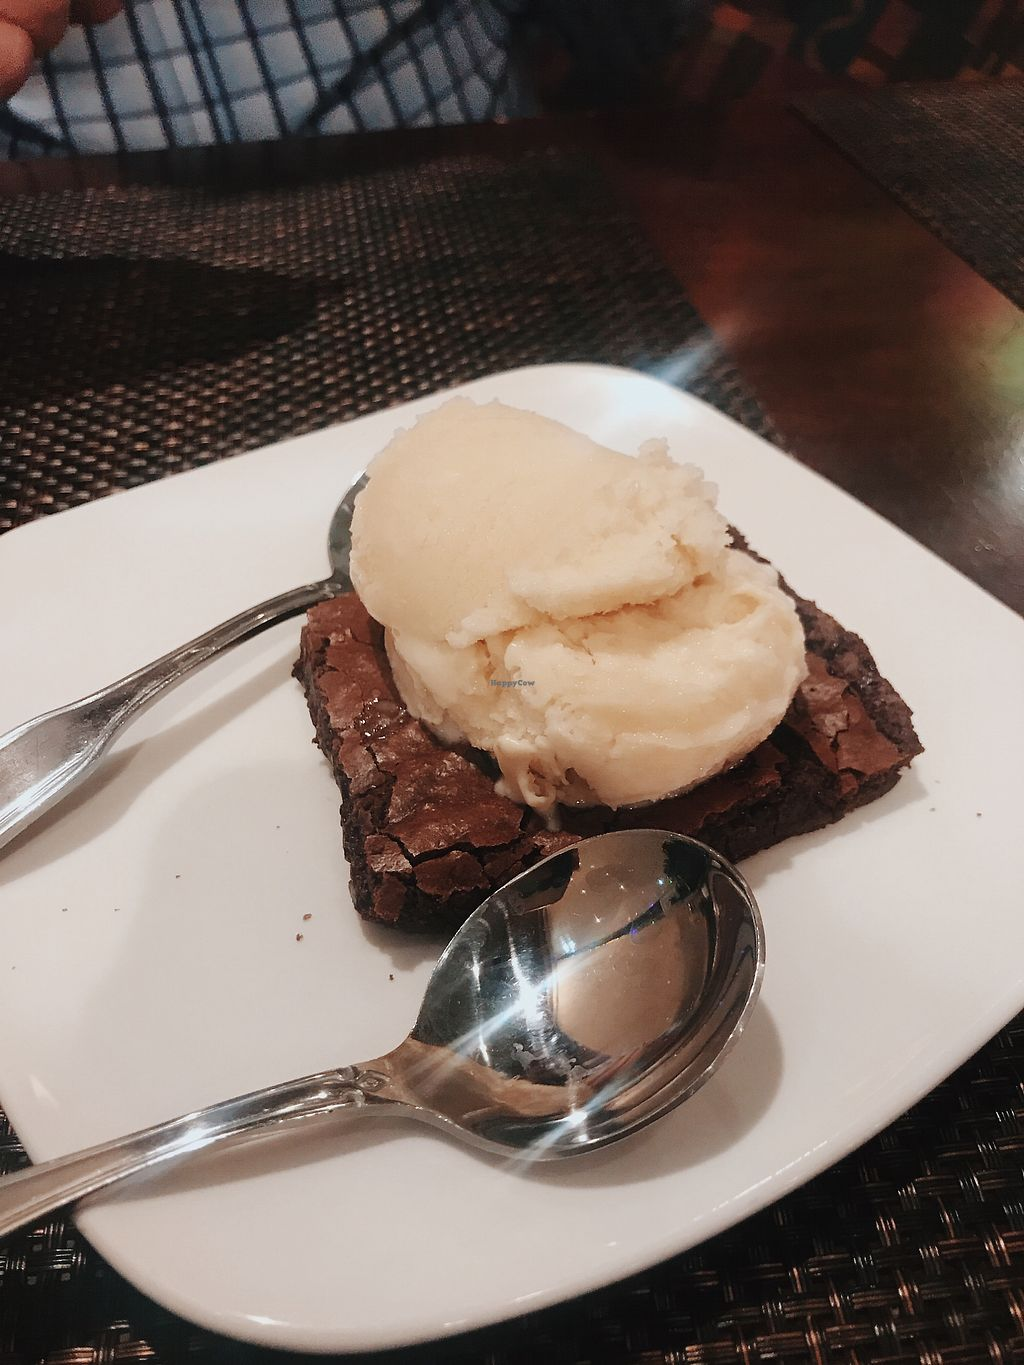 "Photo of Violette's Vegan Organic Eatery and Juice Bar  by <a href=""/members/profile/bbaussie"">bbaussie</a> <br/>Brownie with vegan ice cream <br/> March 21, 2018  - <a href='/contact/abuse/image/55147/373571'>Report</a>"